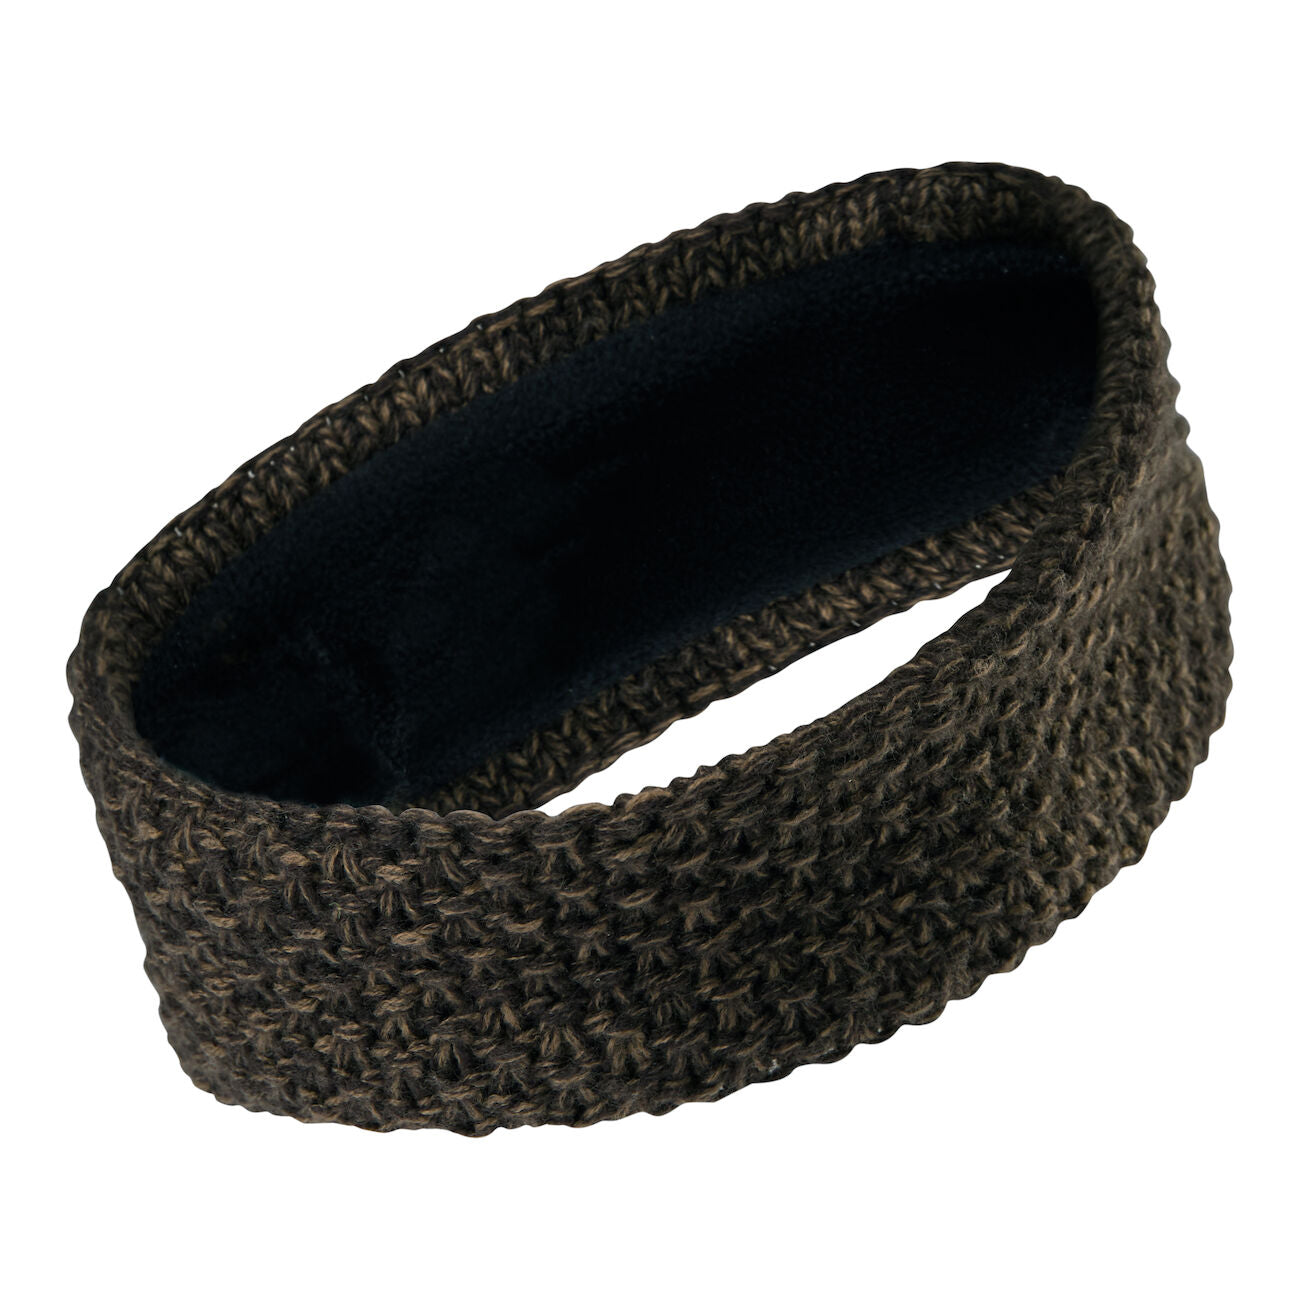 Deerhunter Lady Knitted Headband - One Size